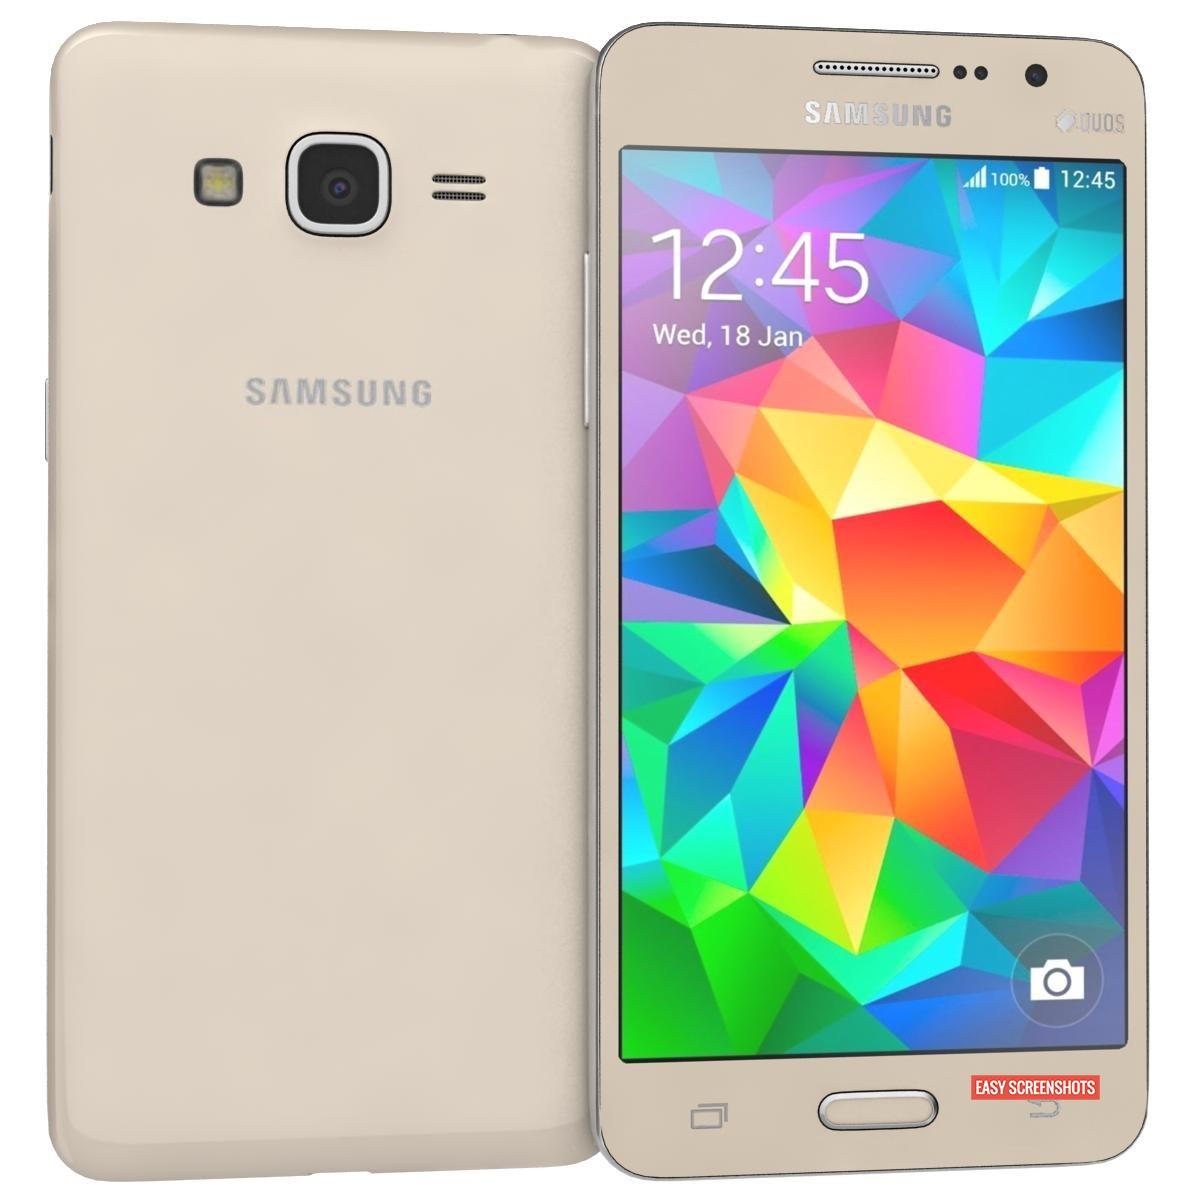 samsung galaxy grand prime screenshot guide how to